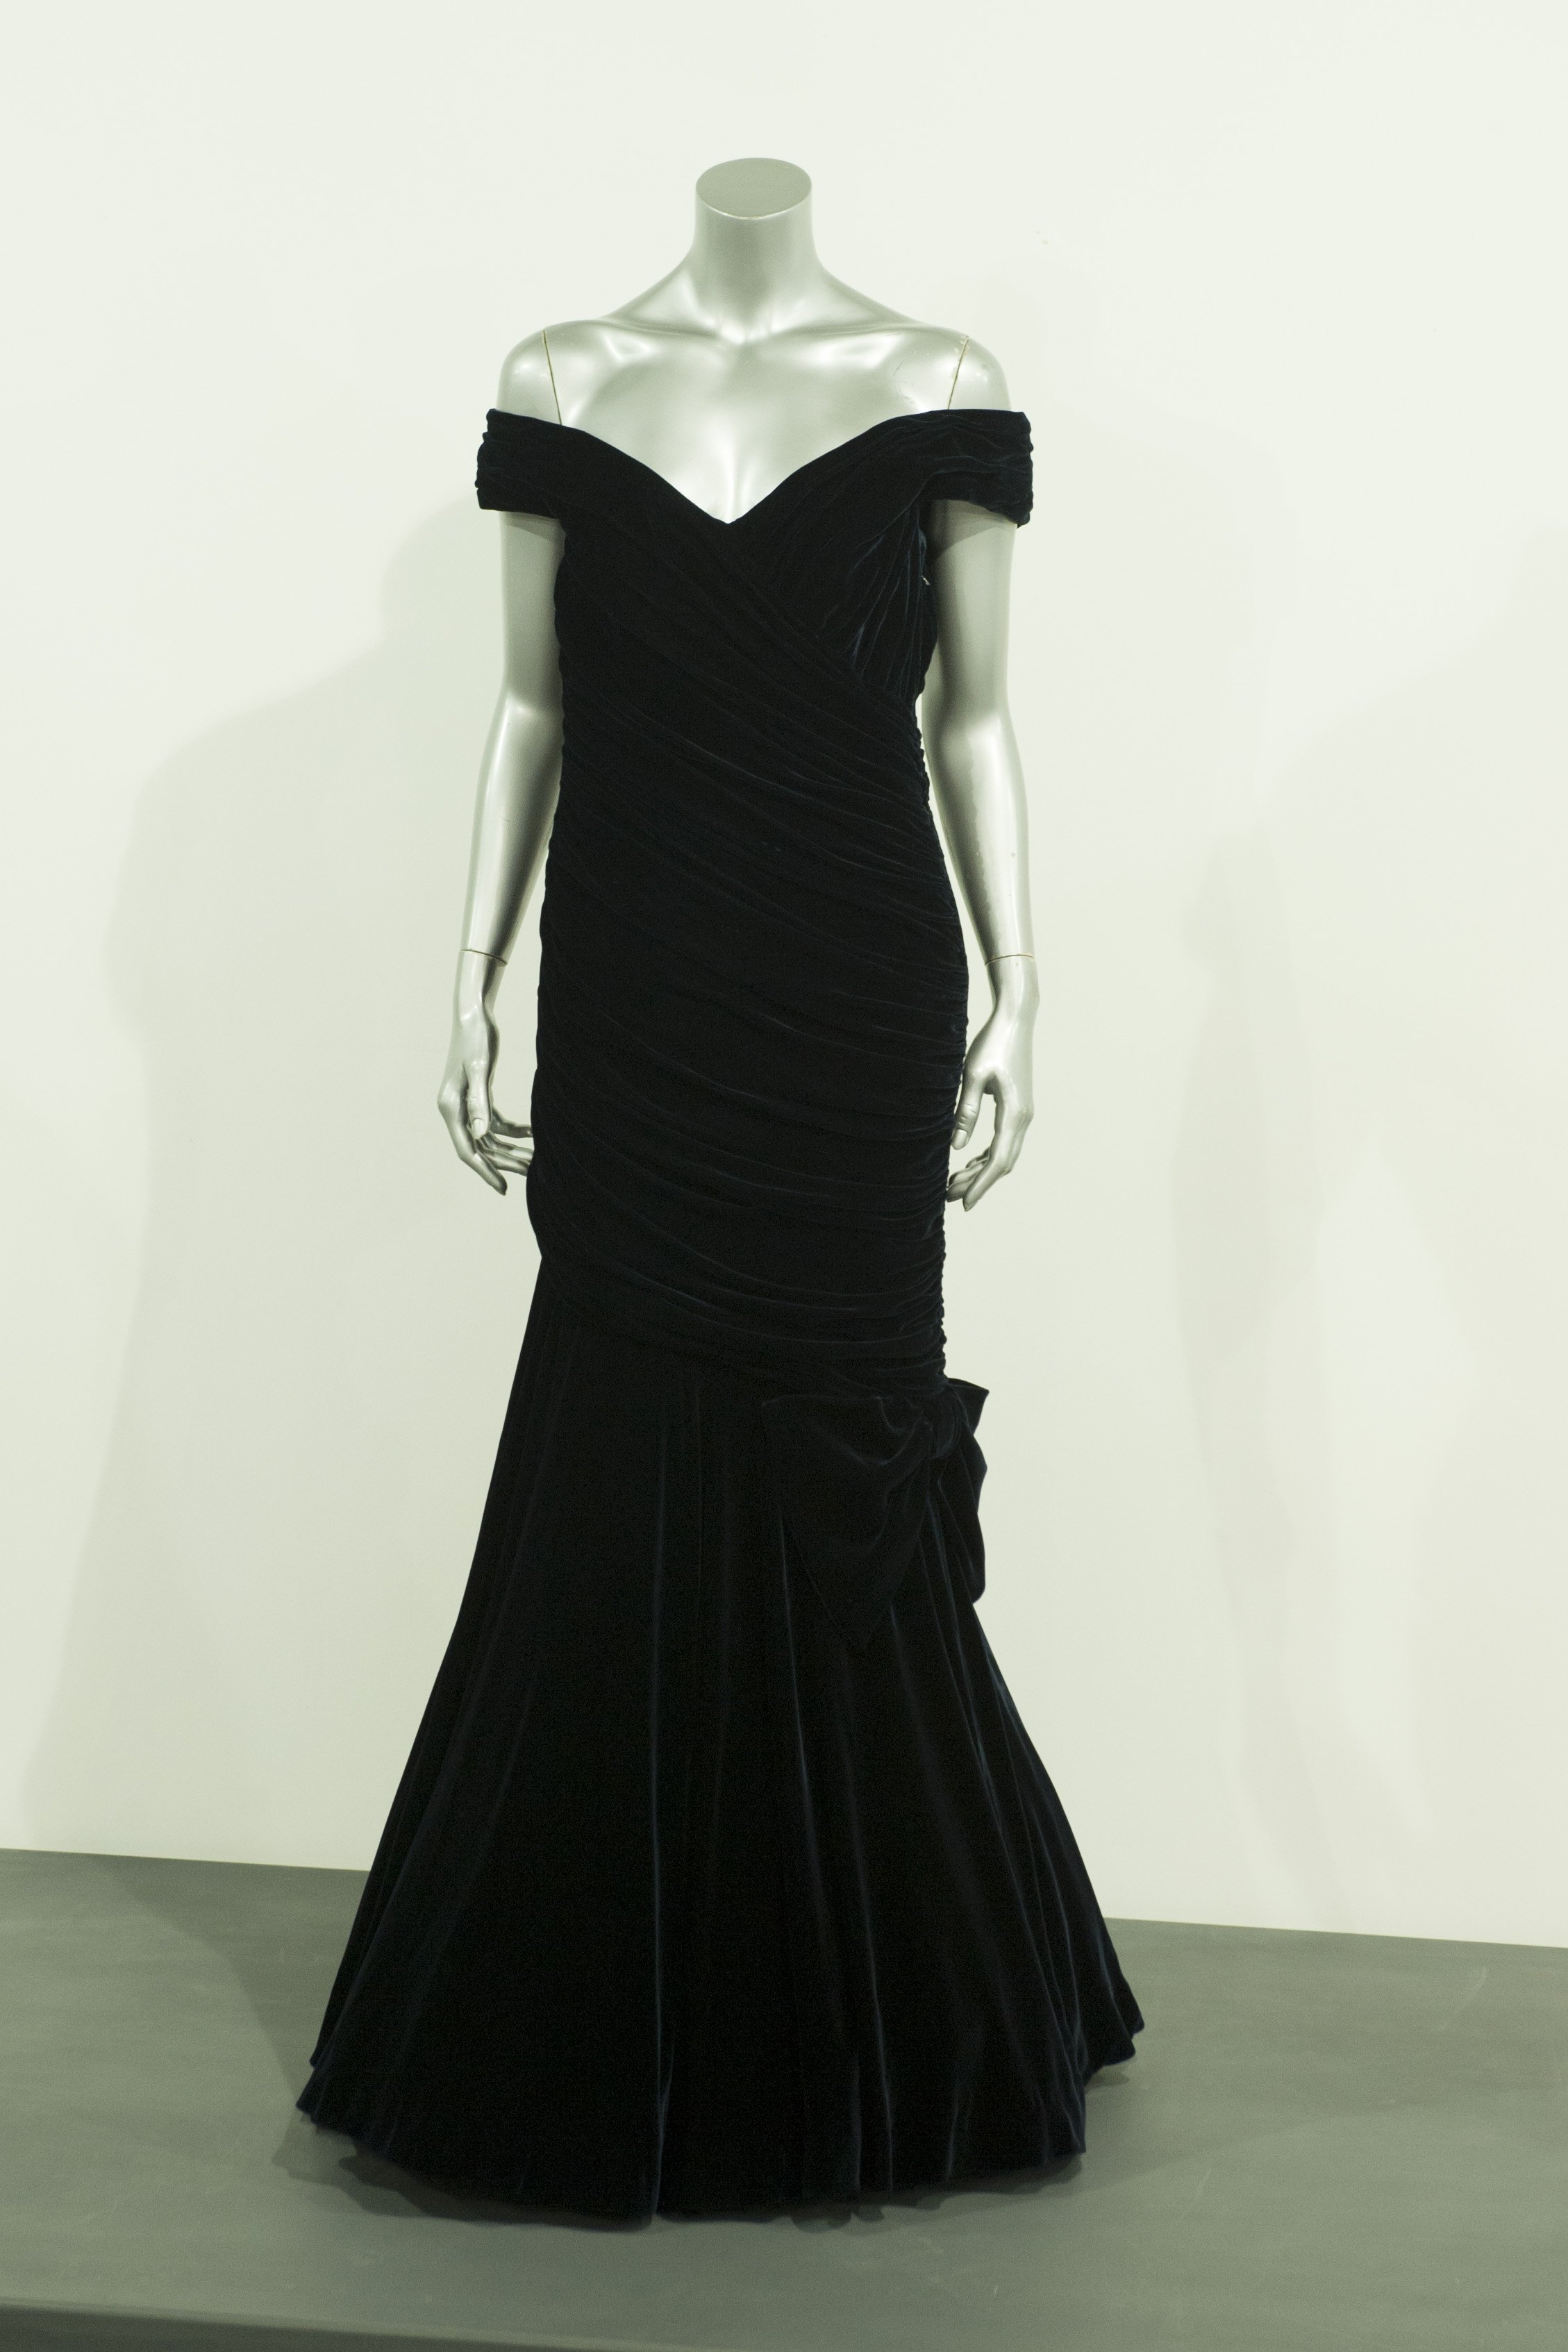 Victor Edelstein Midnight Blue Velvet Gown worn by Princess Diana in November 1985  displayed at a photocall for the 'Fit For a Princess' auction on March 15, 2013, in London, England | Photo: Simon Burchell/Getty Images